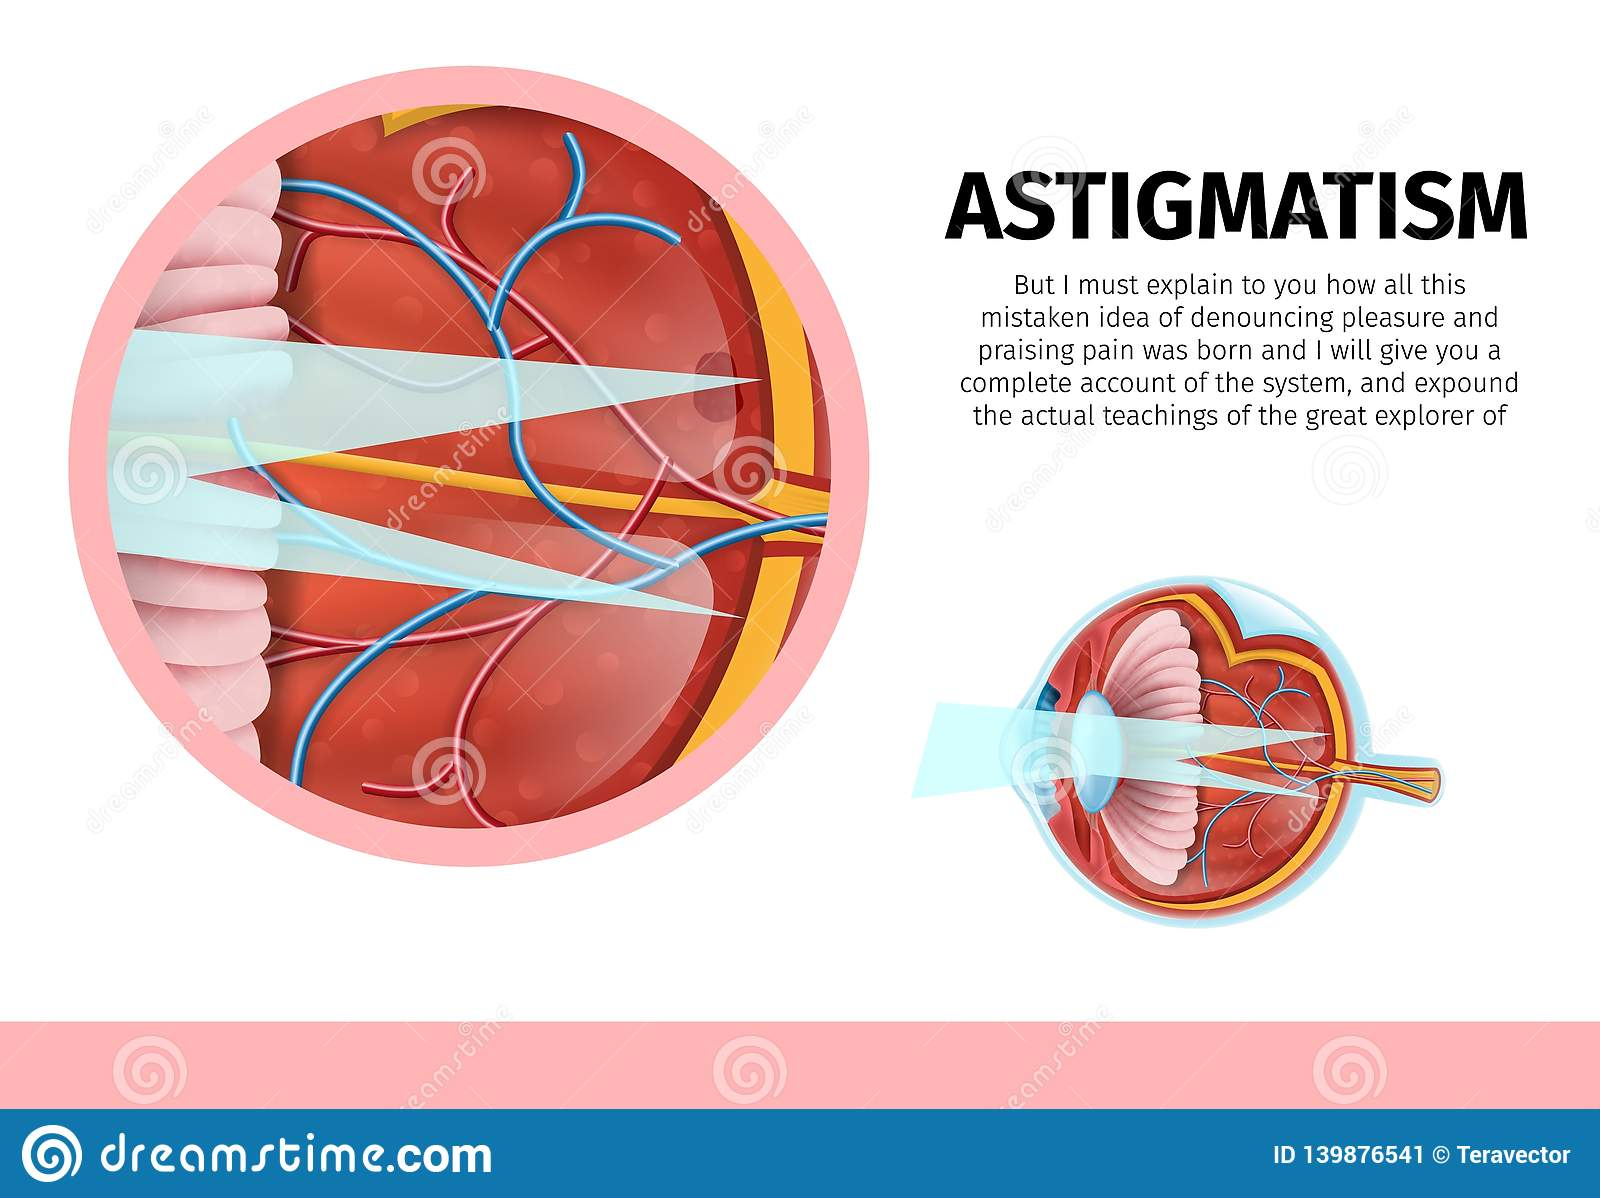 hight resolution of human eye anatomy banner structure of human eye with astigmatism disease cross section with components lens pupil eye chamber retina optic nerve